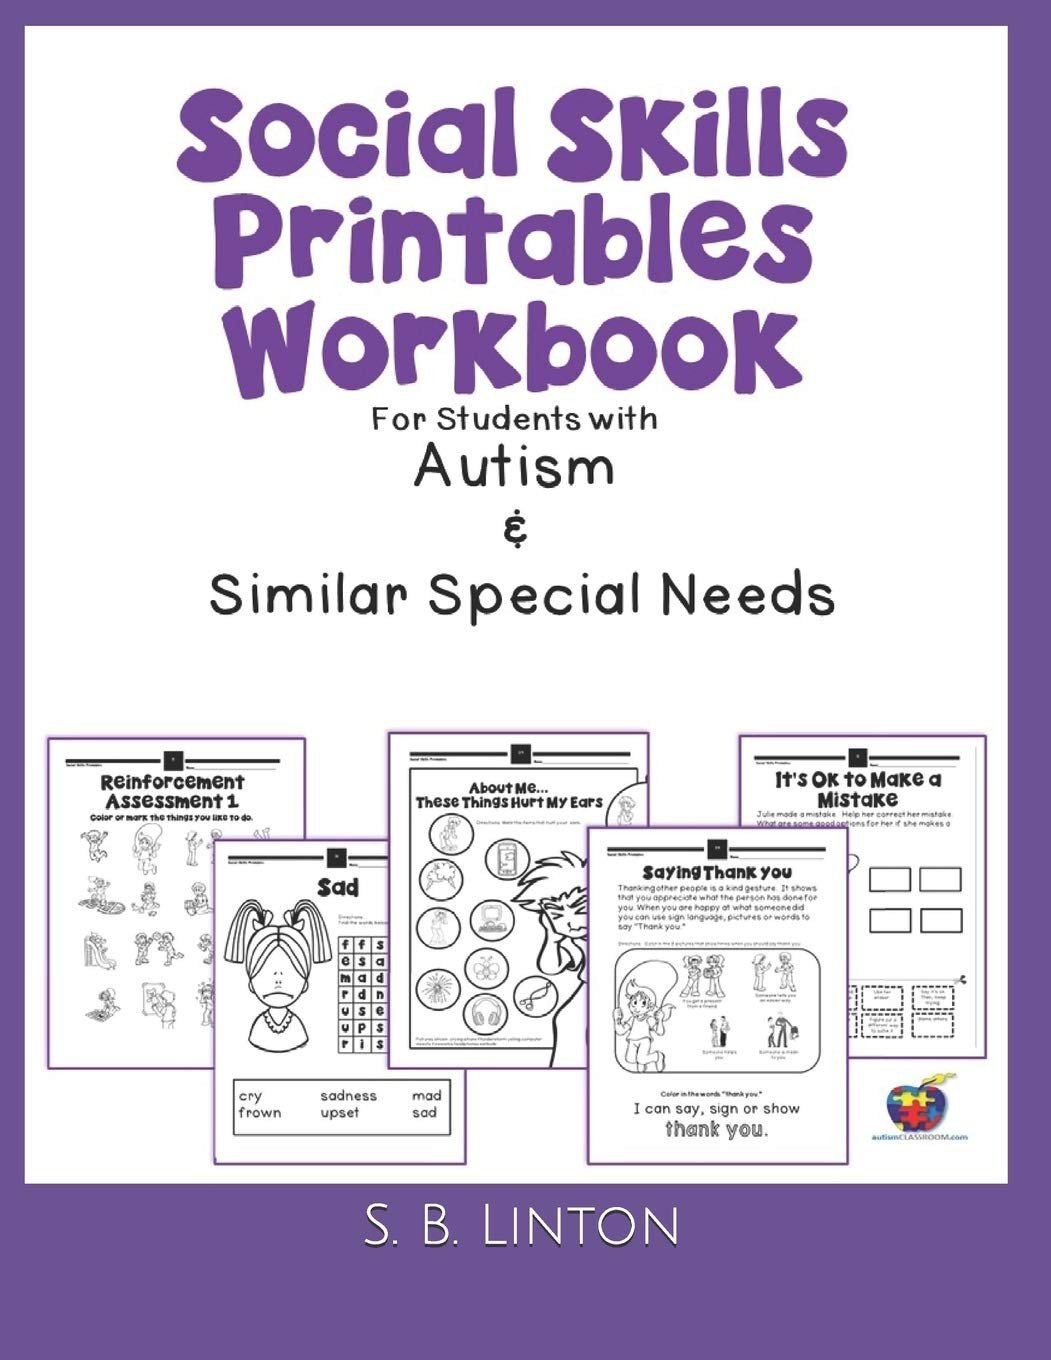 Social Skills Training Worksheets social Skills Printables Workbook for Students with Autism